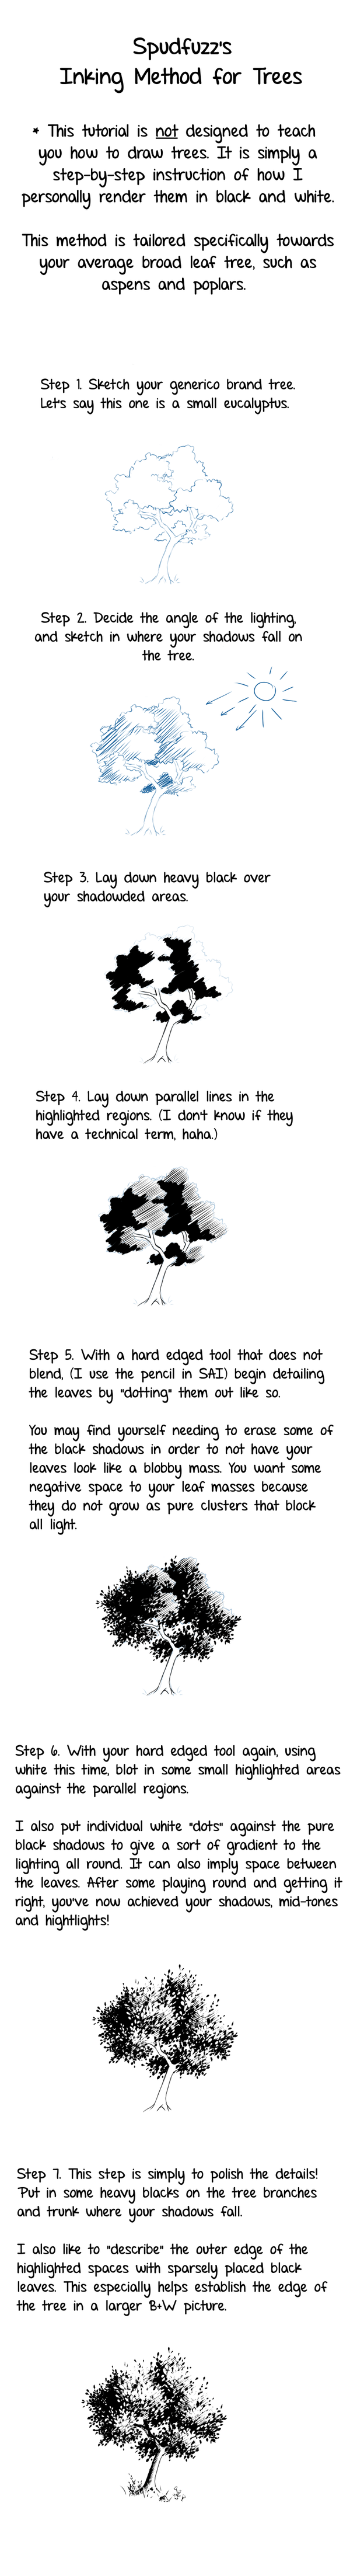 Inking Trees Tutorial by Spudfuzz